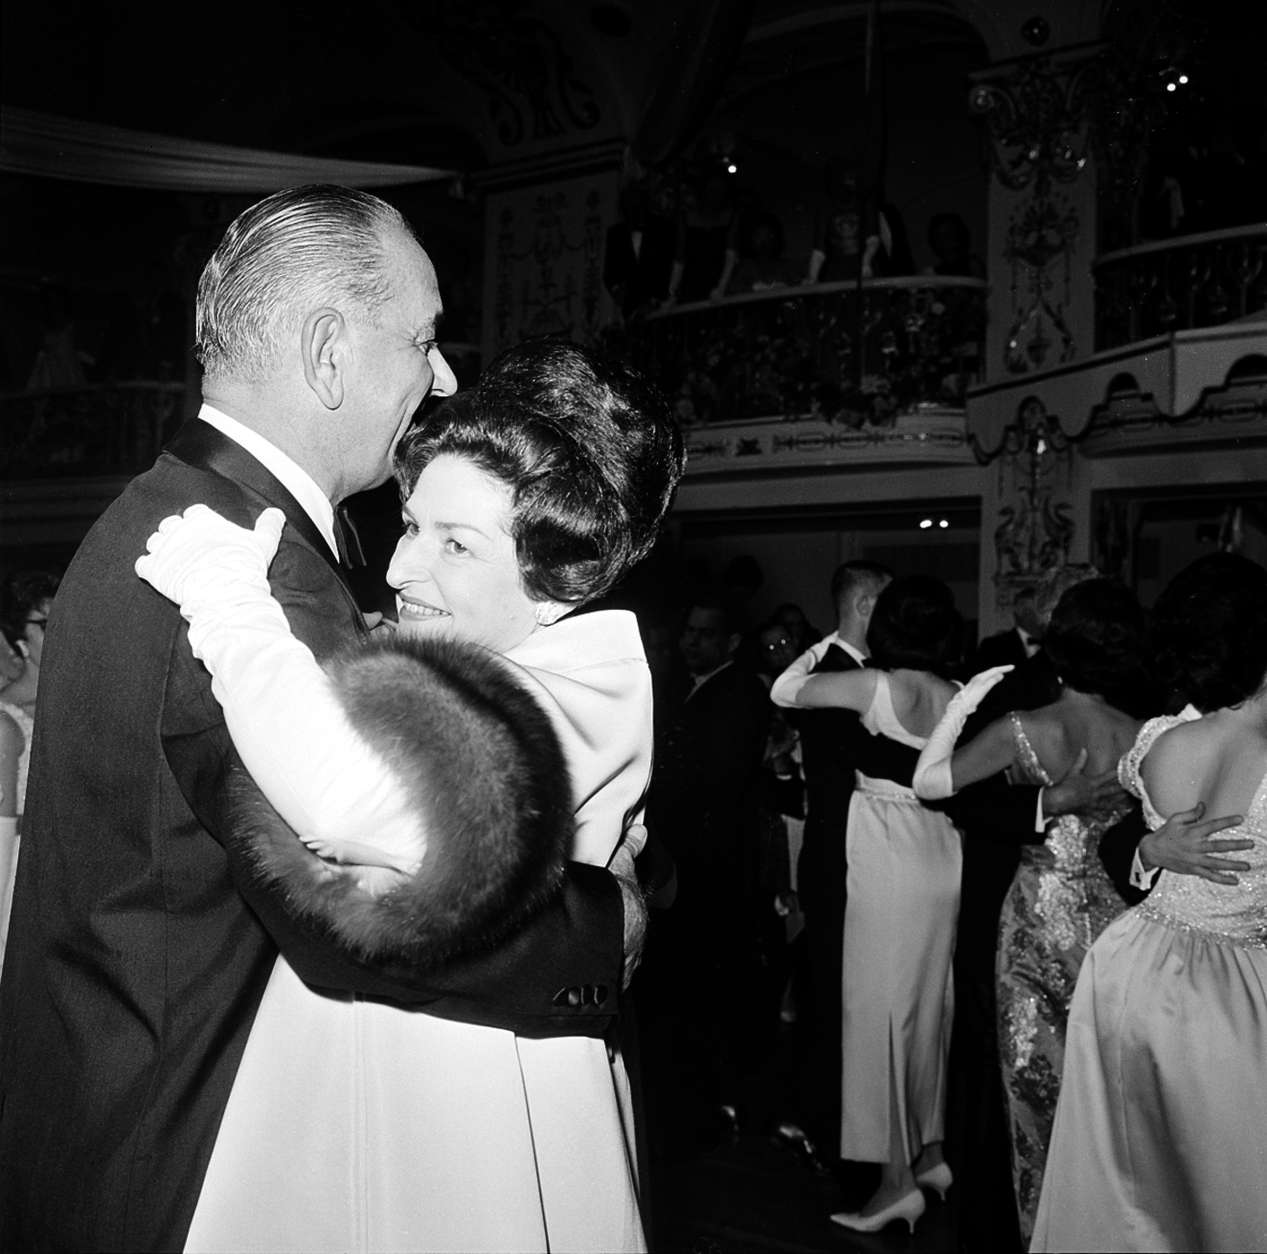 U.S. President Lyndon B. Johnson and the first lady, Lady Bird, dance at the Inaugural Ball at the Mayflower Hotel in Washington, D.C., Jan. 20, 1965.  It is one of five balls held as a windup to the Chief Executive's inauguration earlier today as the nation's 35th president.   (AP Photo)